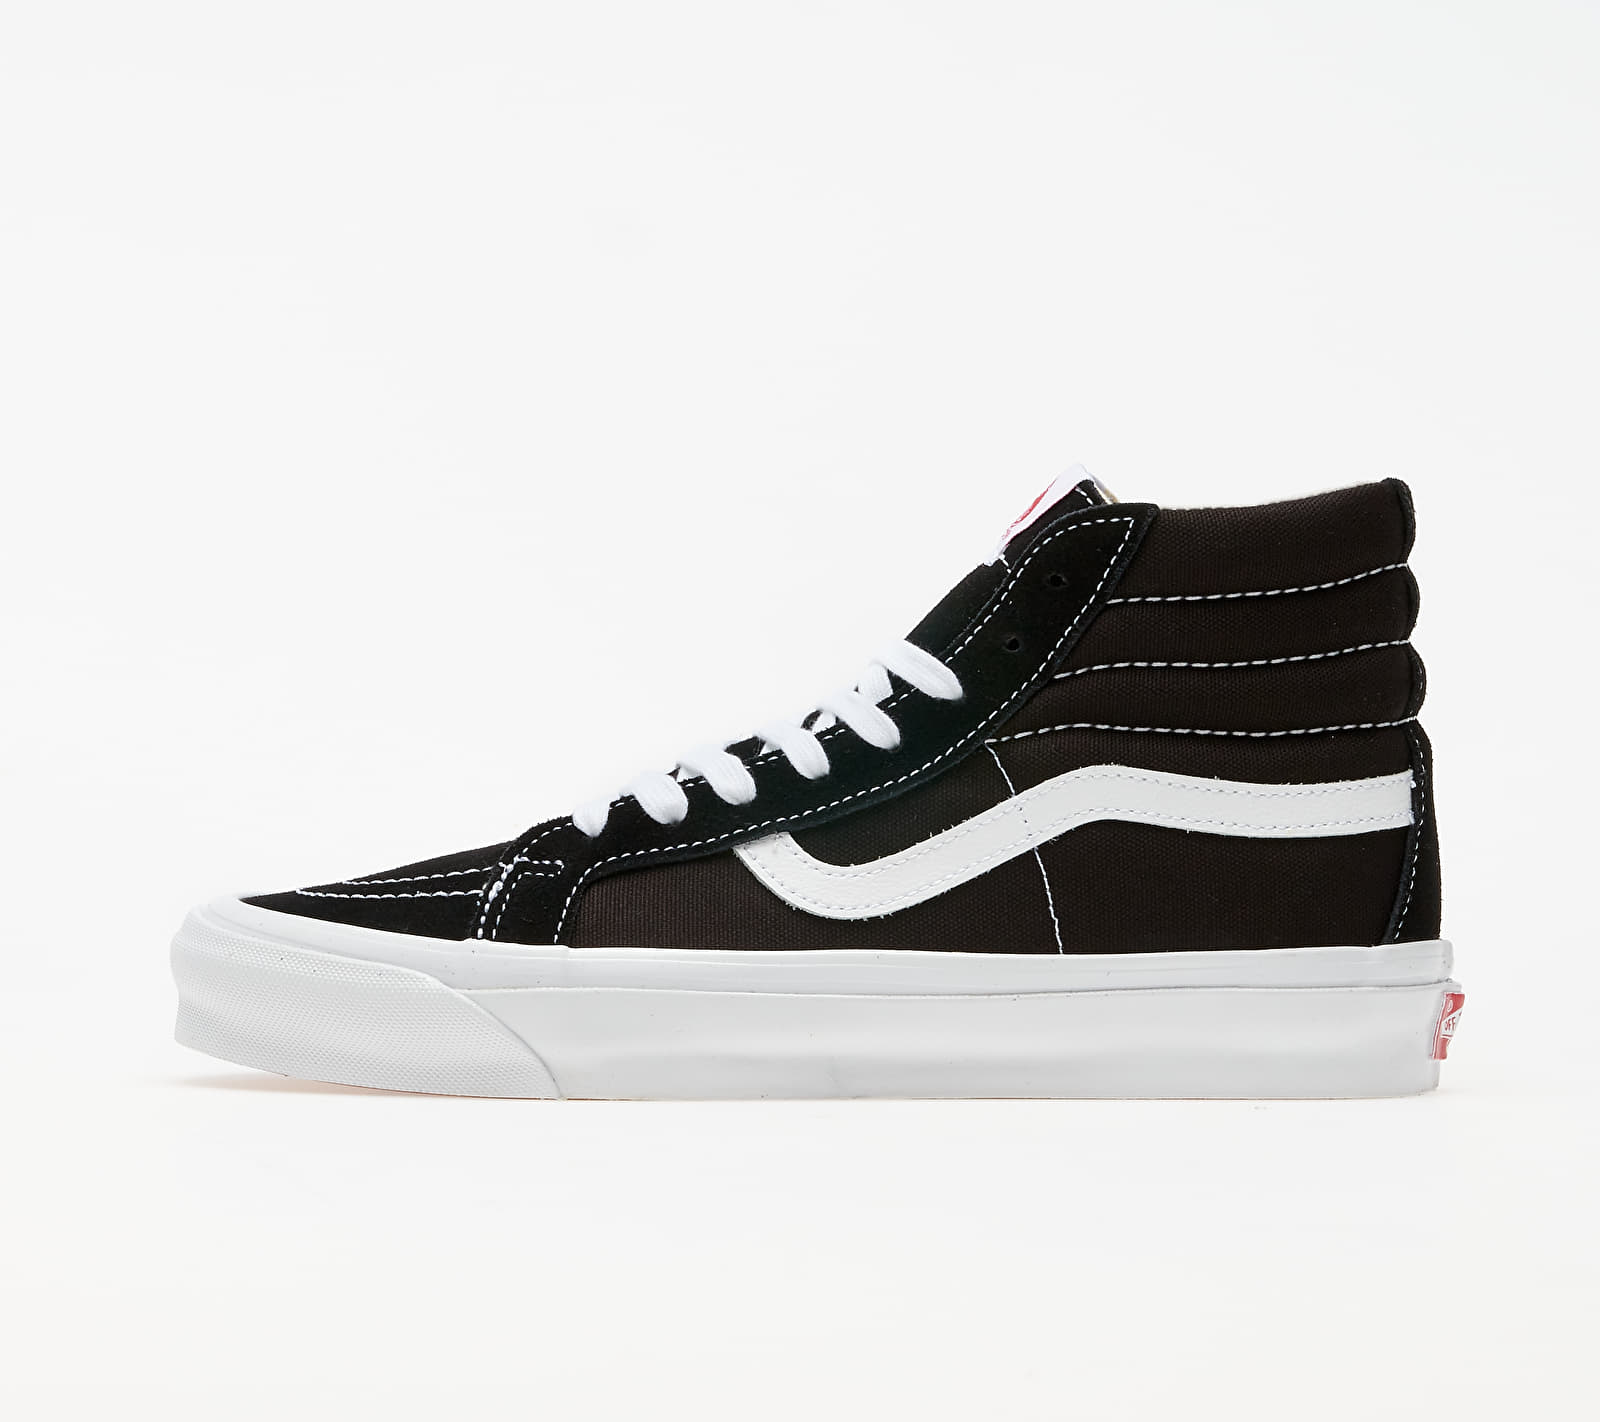 Vans OG Sk8-Hi LX (Suede/ Canvas) Black/ True White EUR 35